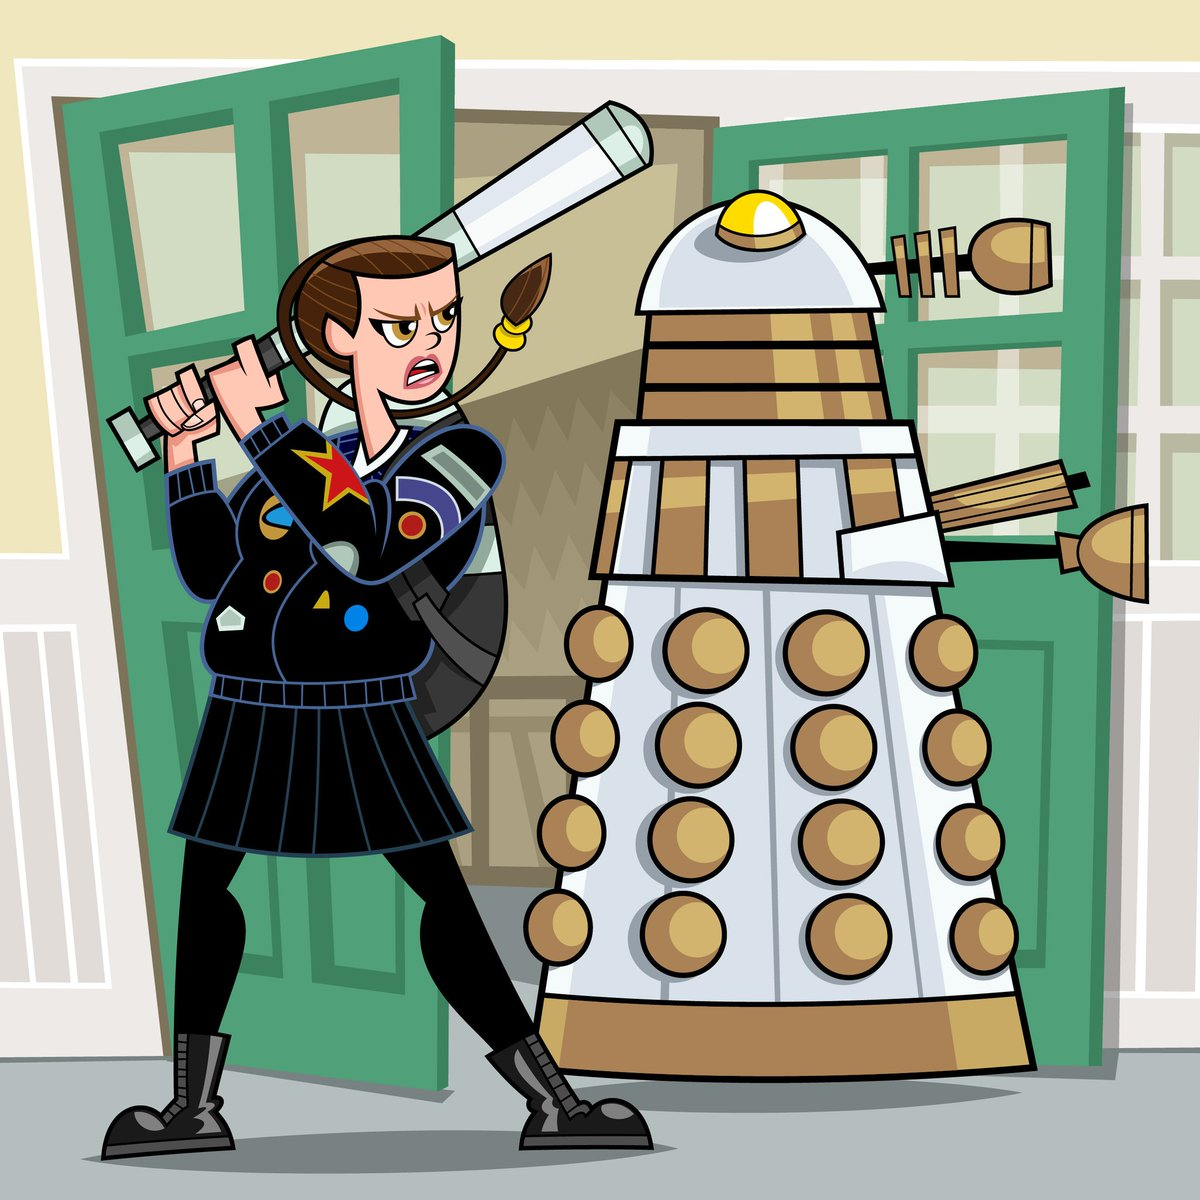 """""""Who are you calling small?!""""   Some #Friday #fanart based on a piece I did for #Inktober2019 – @sophie_aldred's Ace from #DoctorWho taking a swing at an unsuspecting Dalek!  @DWMtweets @BBCDoctorWho #illustrator #FanArtFriday #twitterart #EXTERMINATE #Daleks #classicTV #SciFipic.twitter.com/jJc094VhzY"""